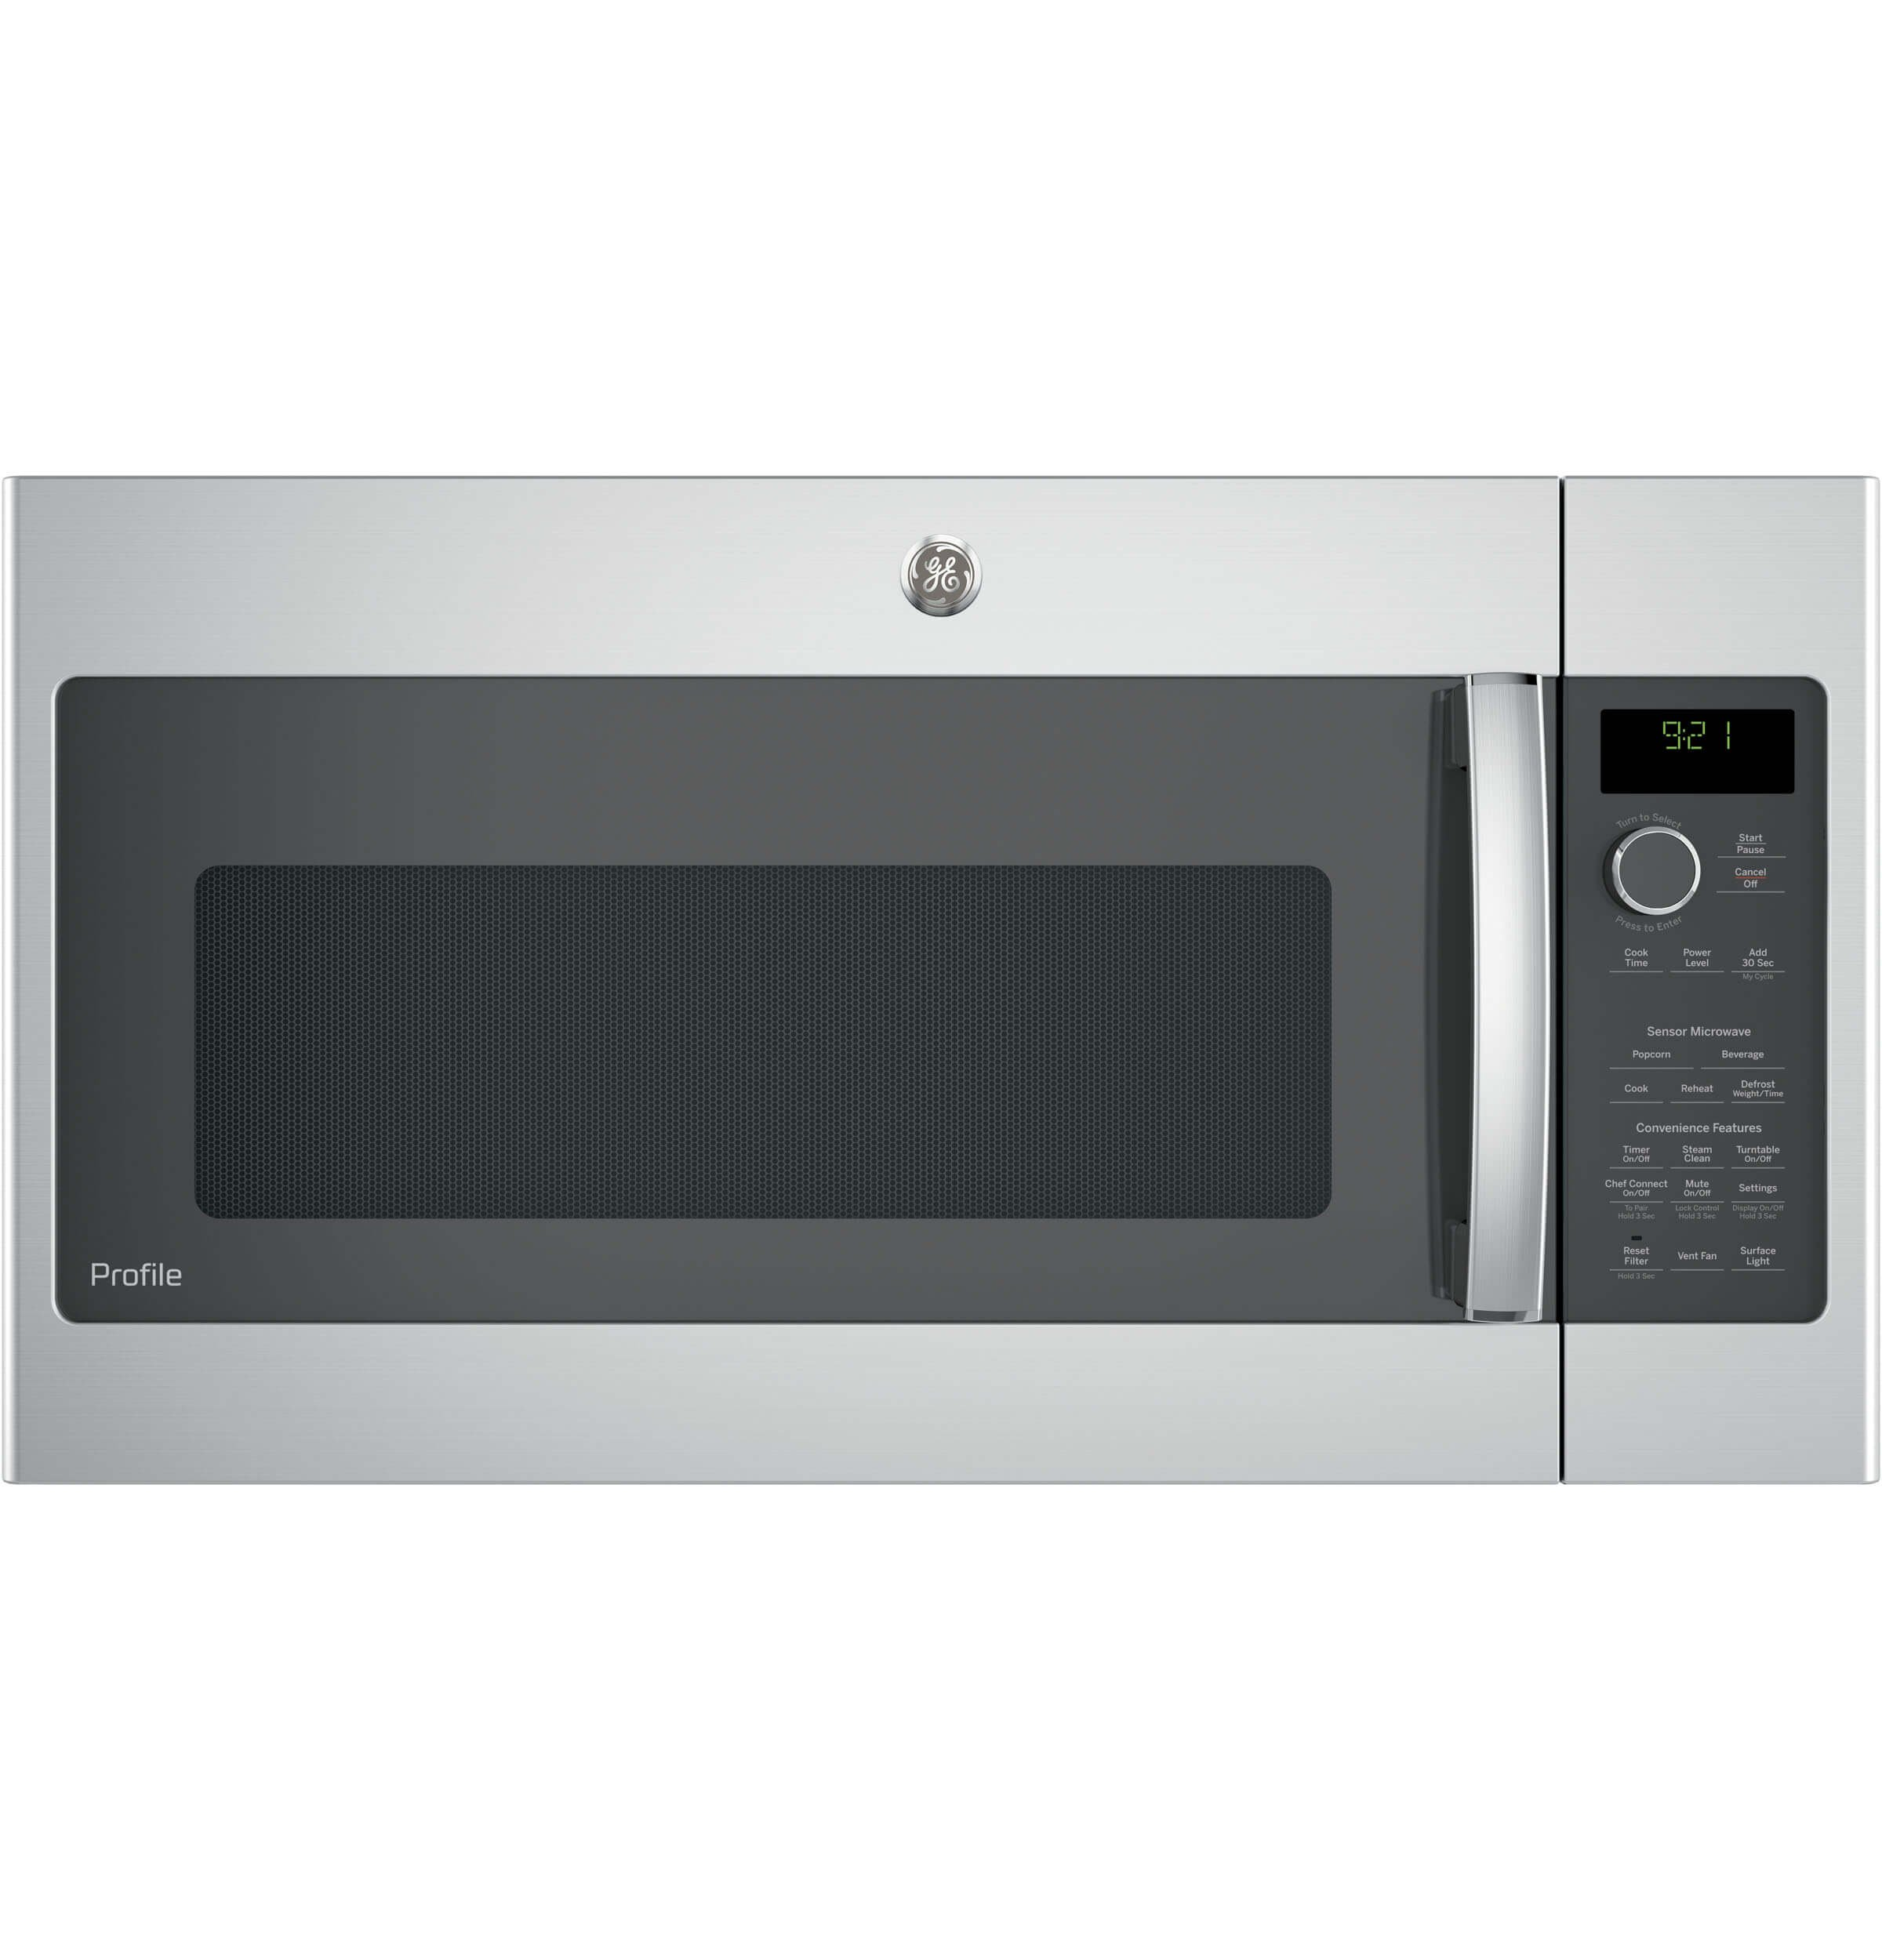 GE PNM9216SKSS Microwave Oven by GE